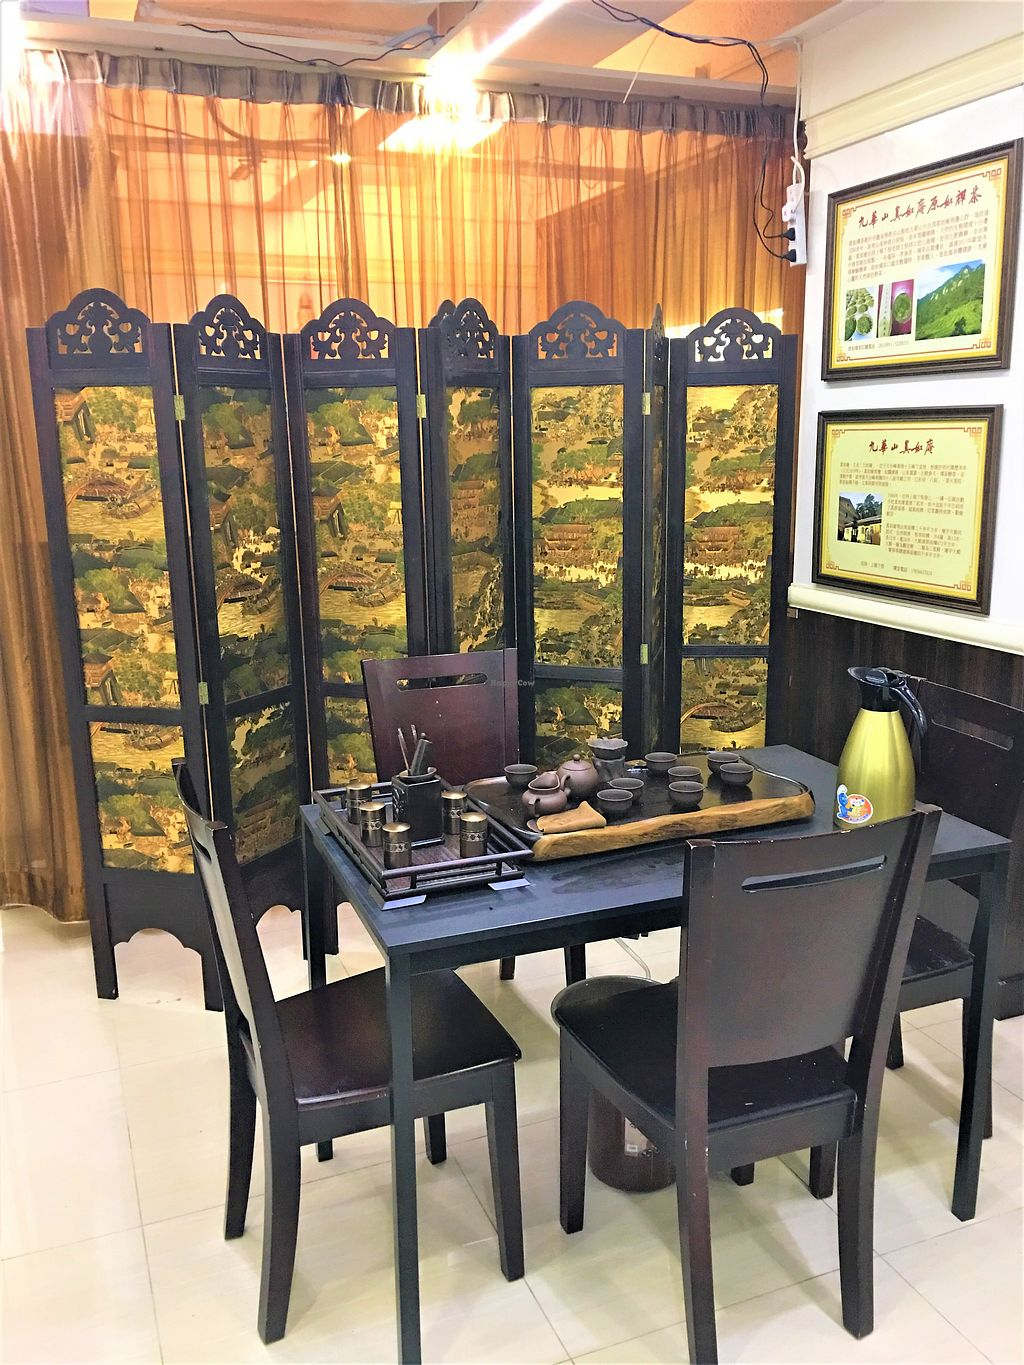 """Photo of A Mi Tuo Fo Su Xin Yuan  by <a href=""""/members/profile/Stevie"""">Stevie</a> <br/>Tea room <br/> October 13, 2017  - <a href='/contact/abuse/image/102842/314743'>Report</a>"""